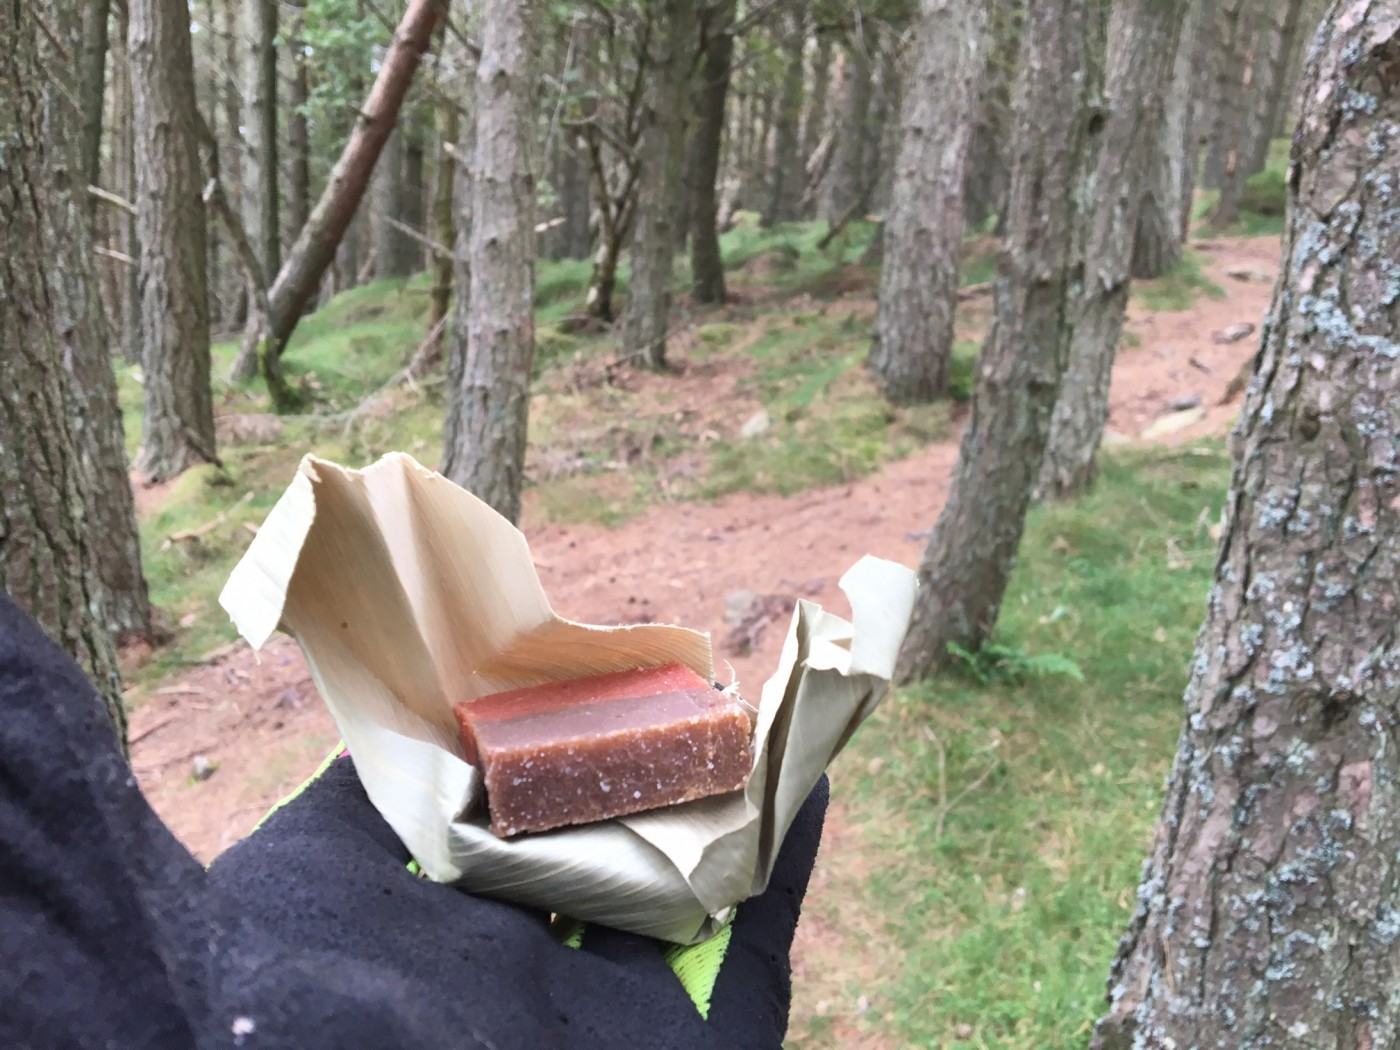 These are neat little parcels of energy – perfect for the trail. The coffee one came out on top for me!